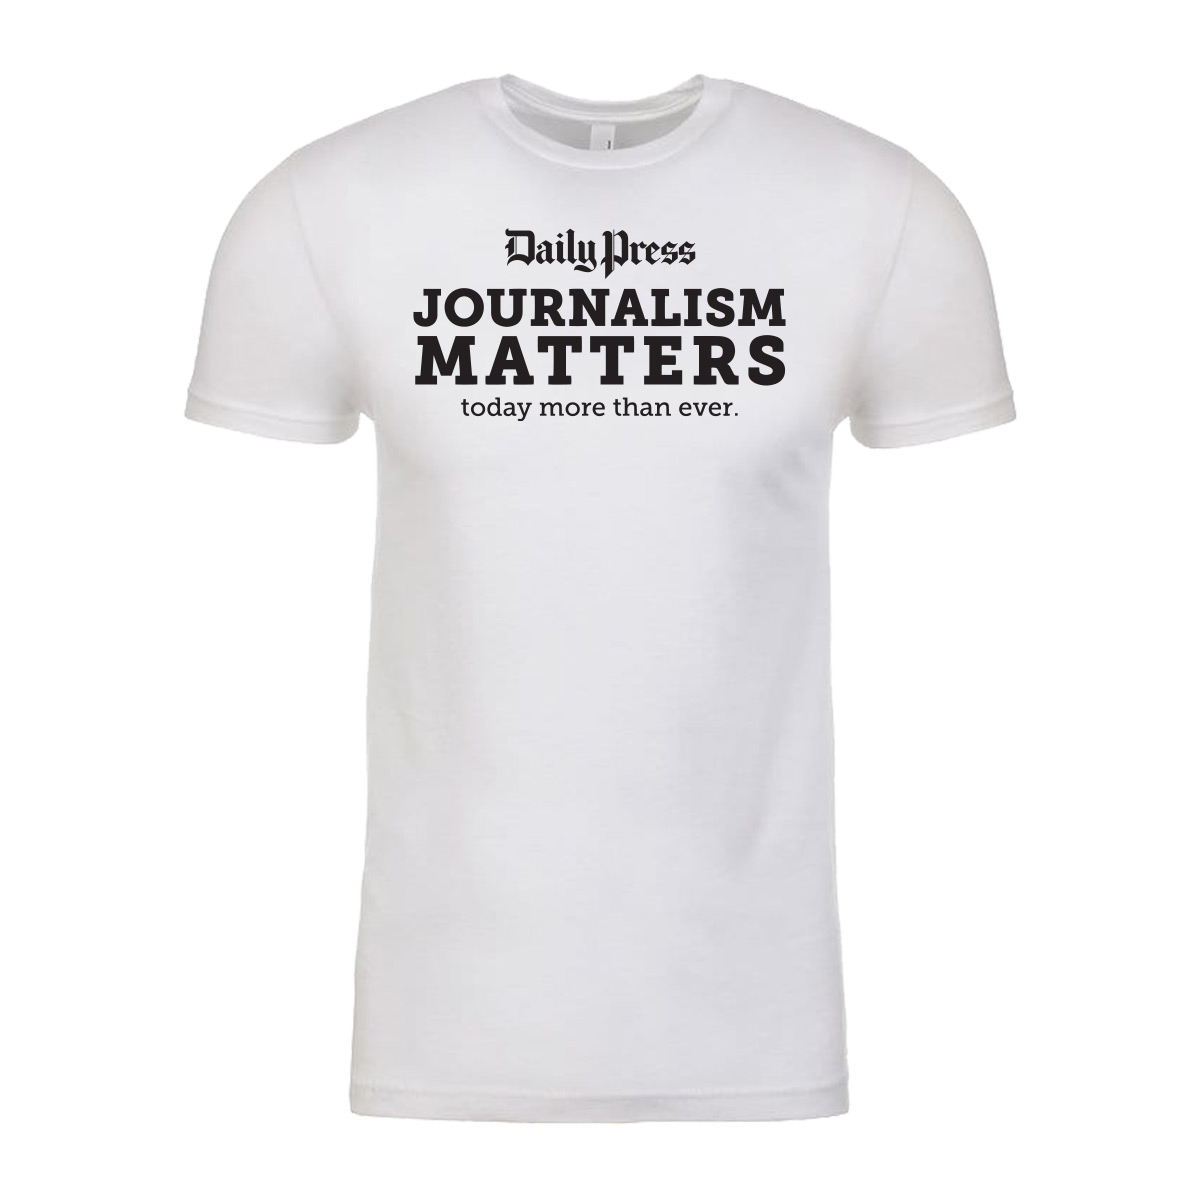 Daily Press Journalism Matters Shirt